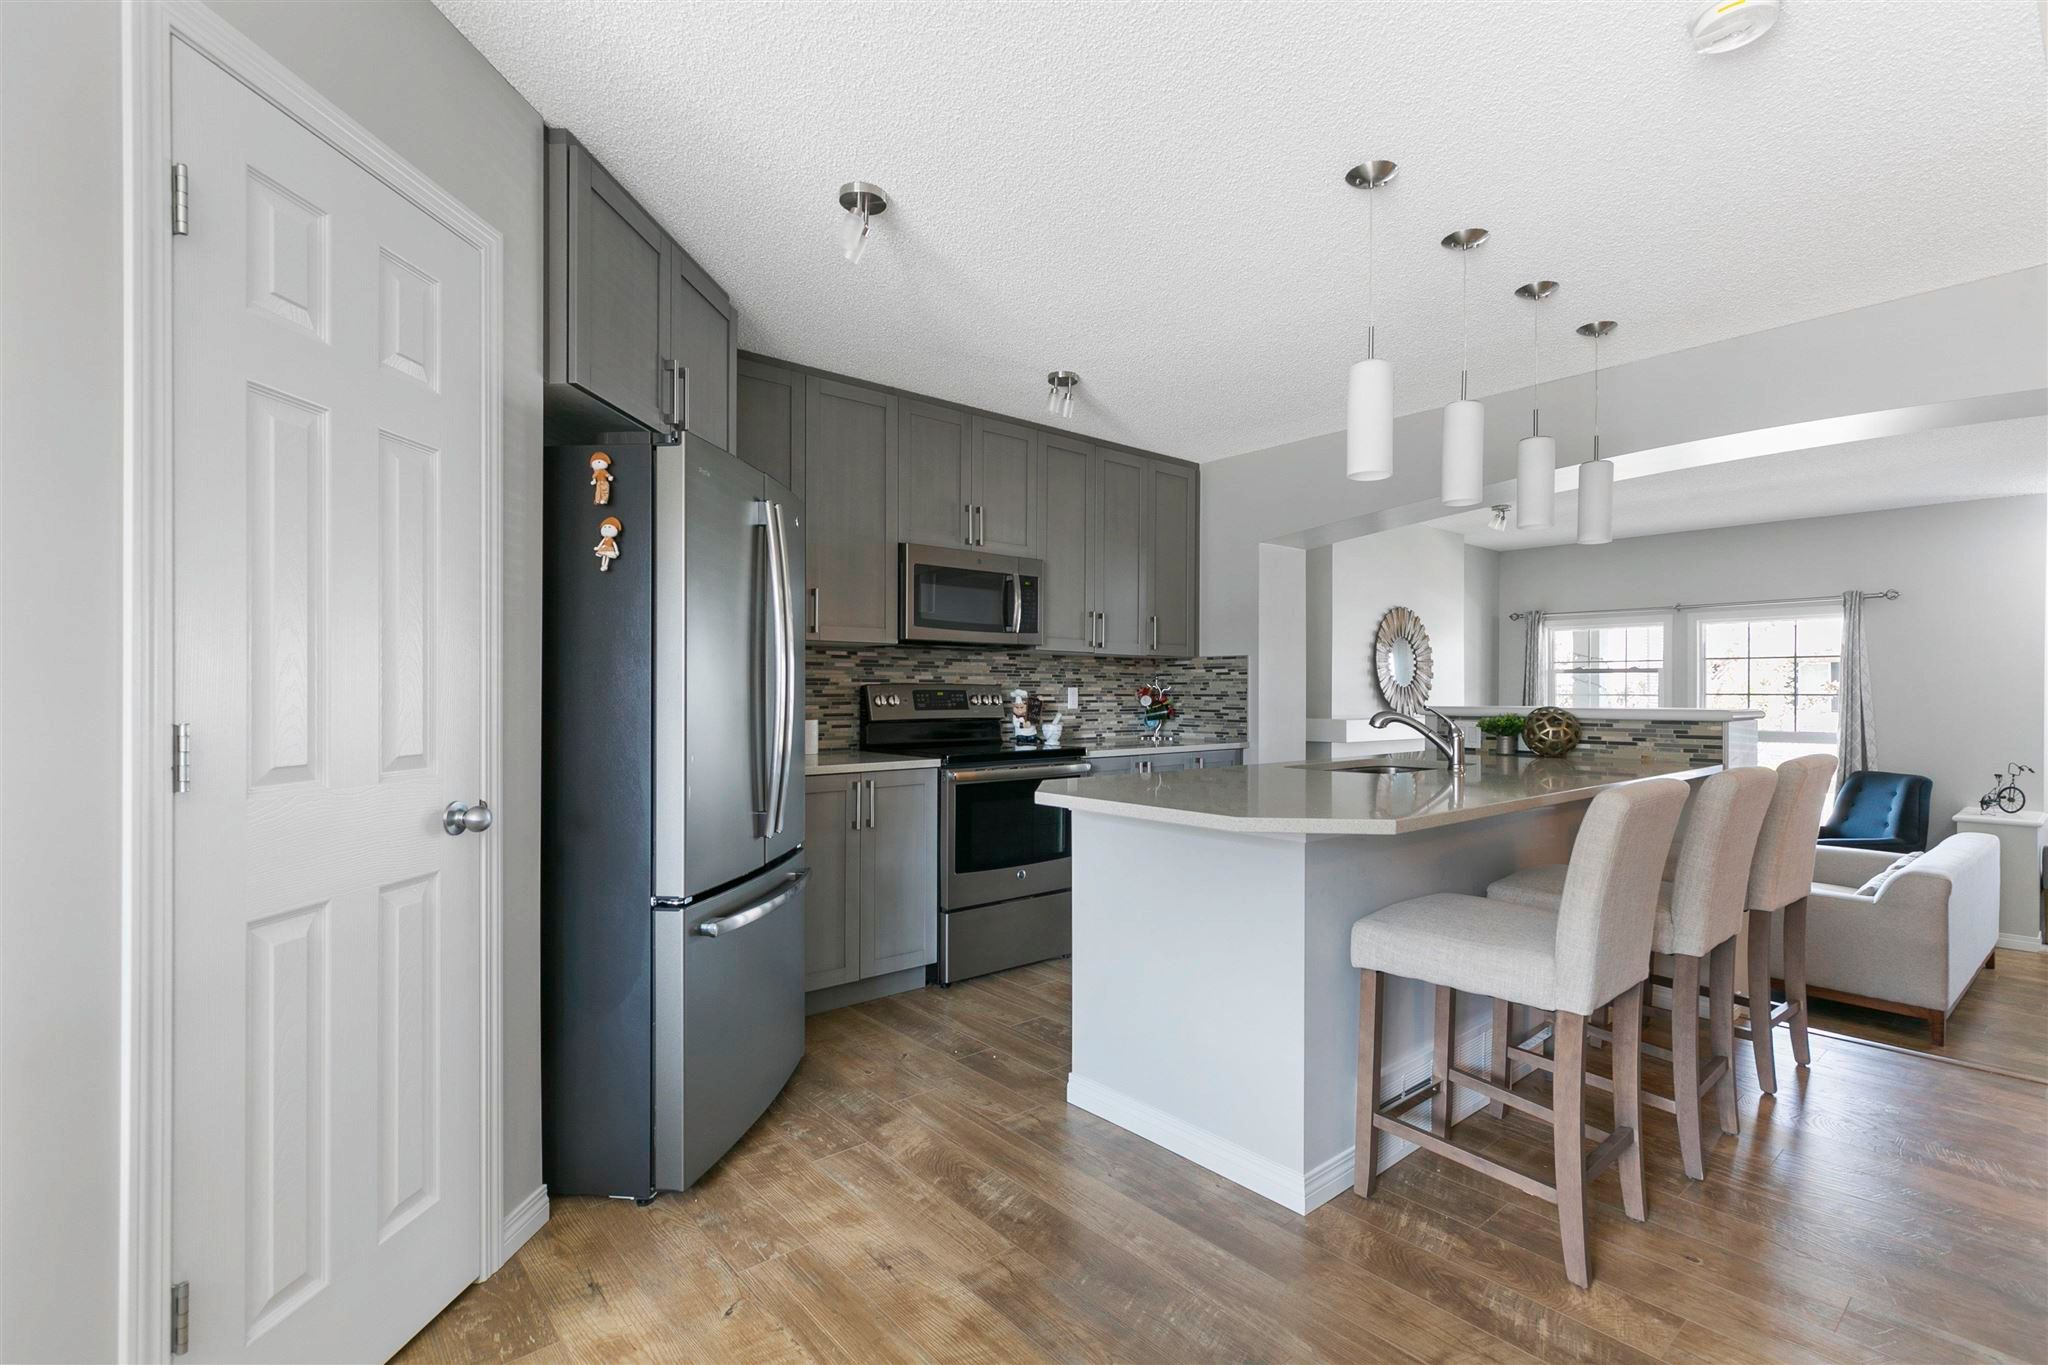 Main Photo: 2566 COUGHLAN Road in Edmonton: Zone 55 House for sale : MLS®# E4247684